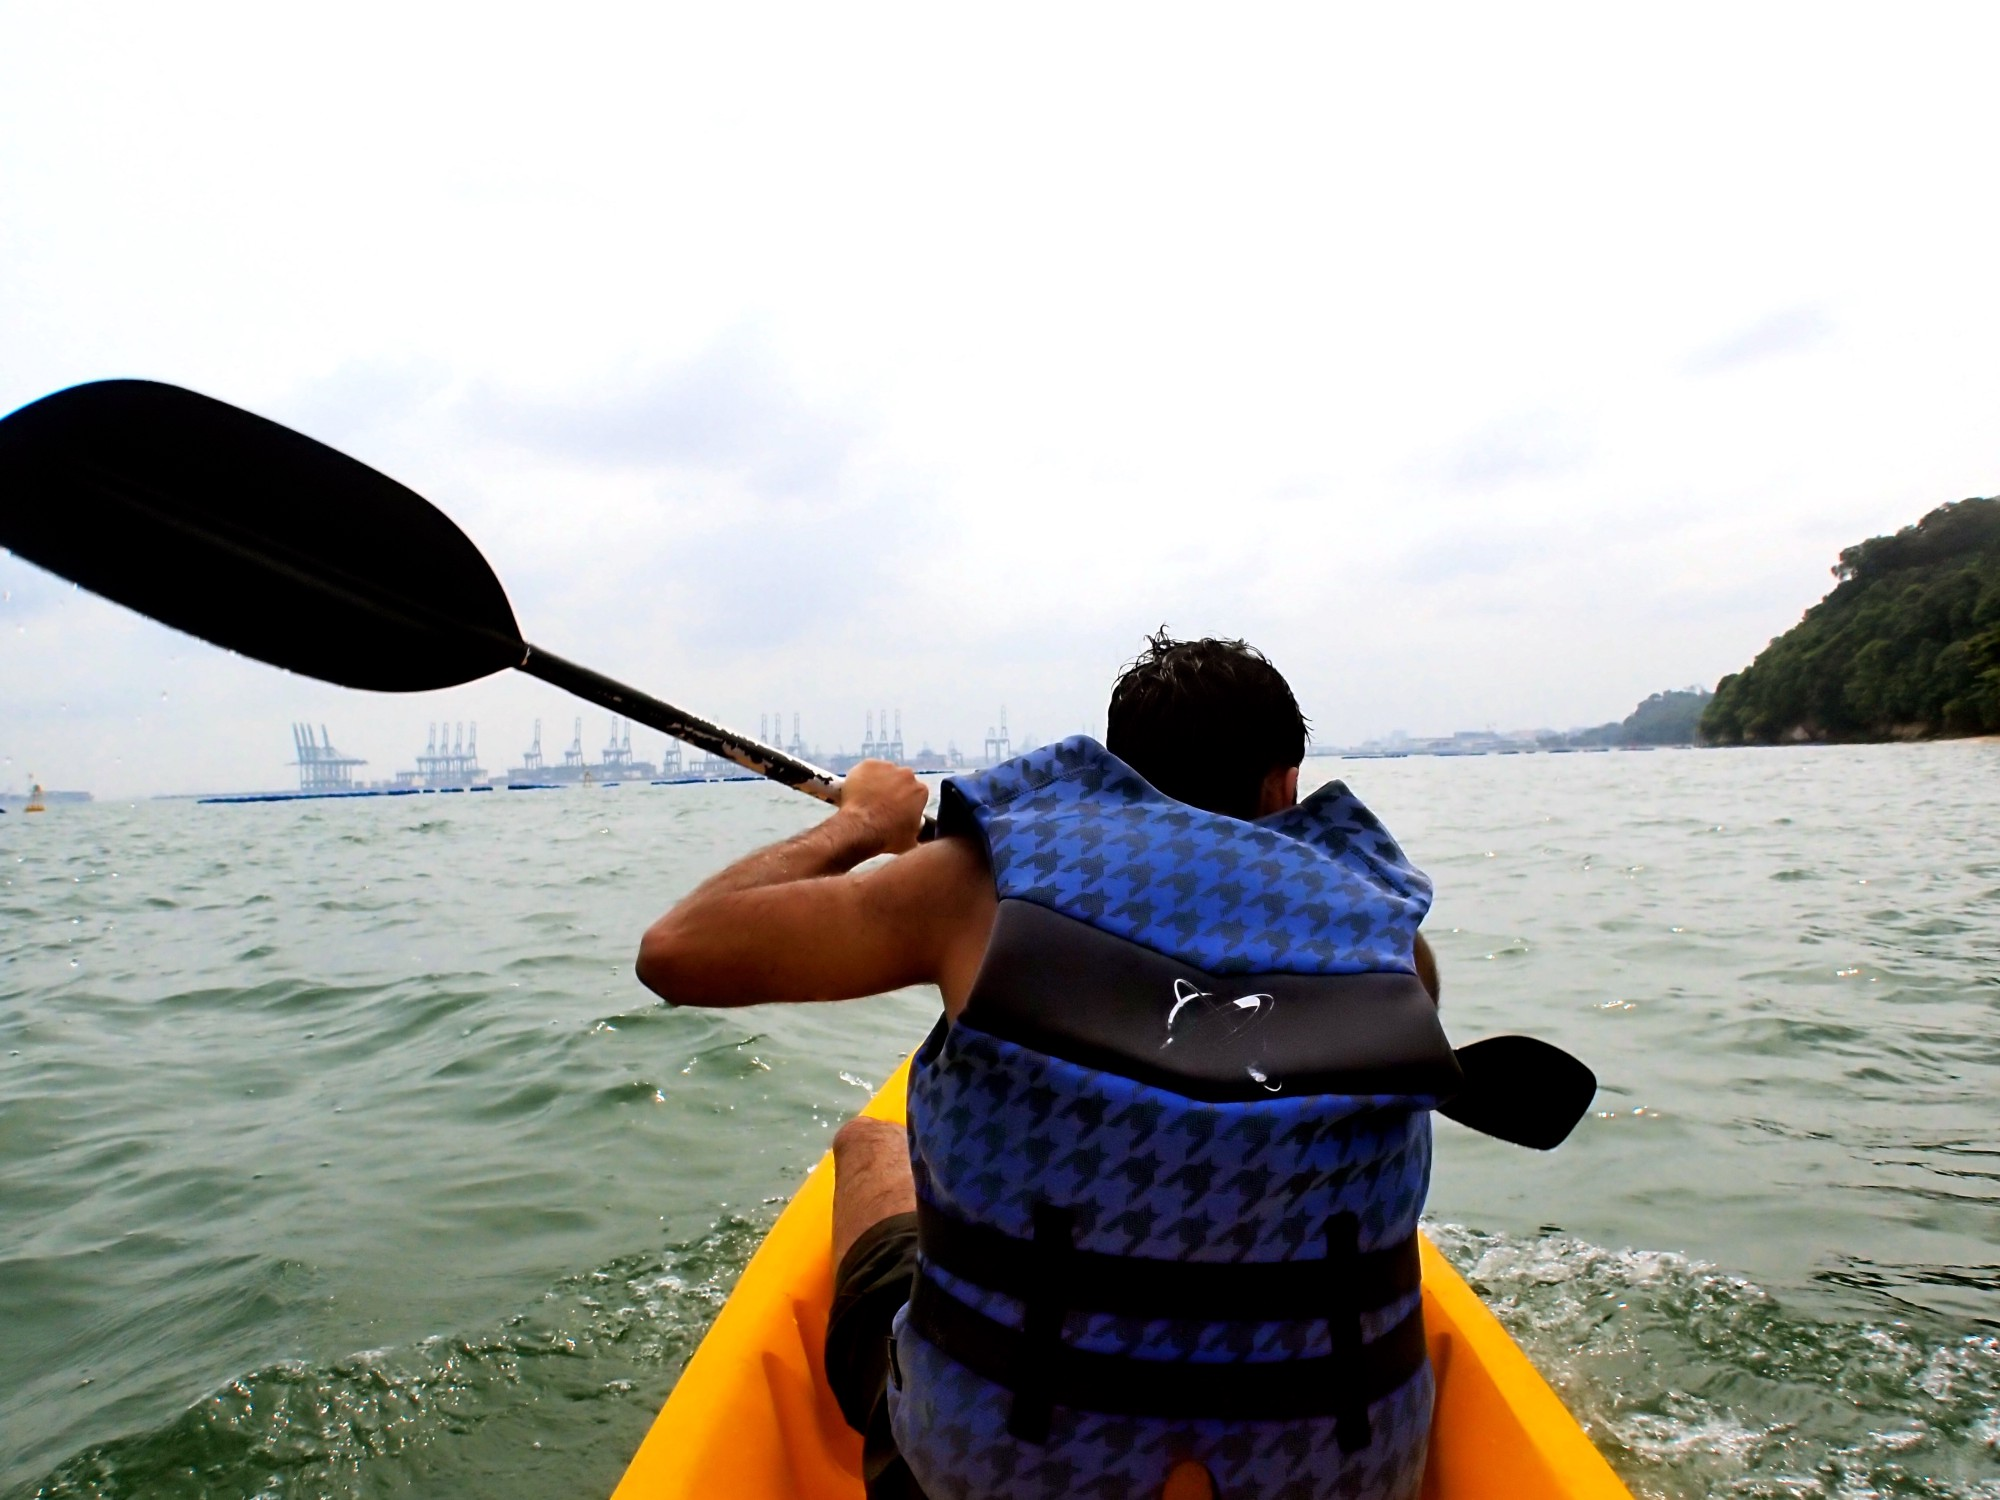 Dunk Island Cave: Singapore Sundays 10: Donuts And Watery Caves